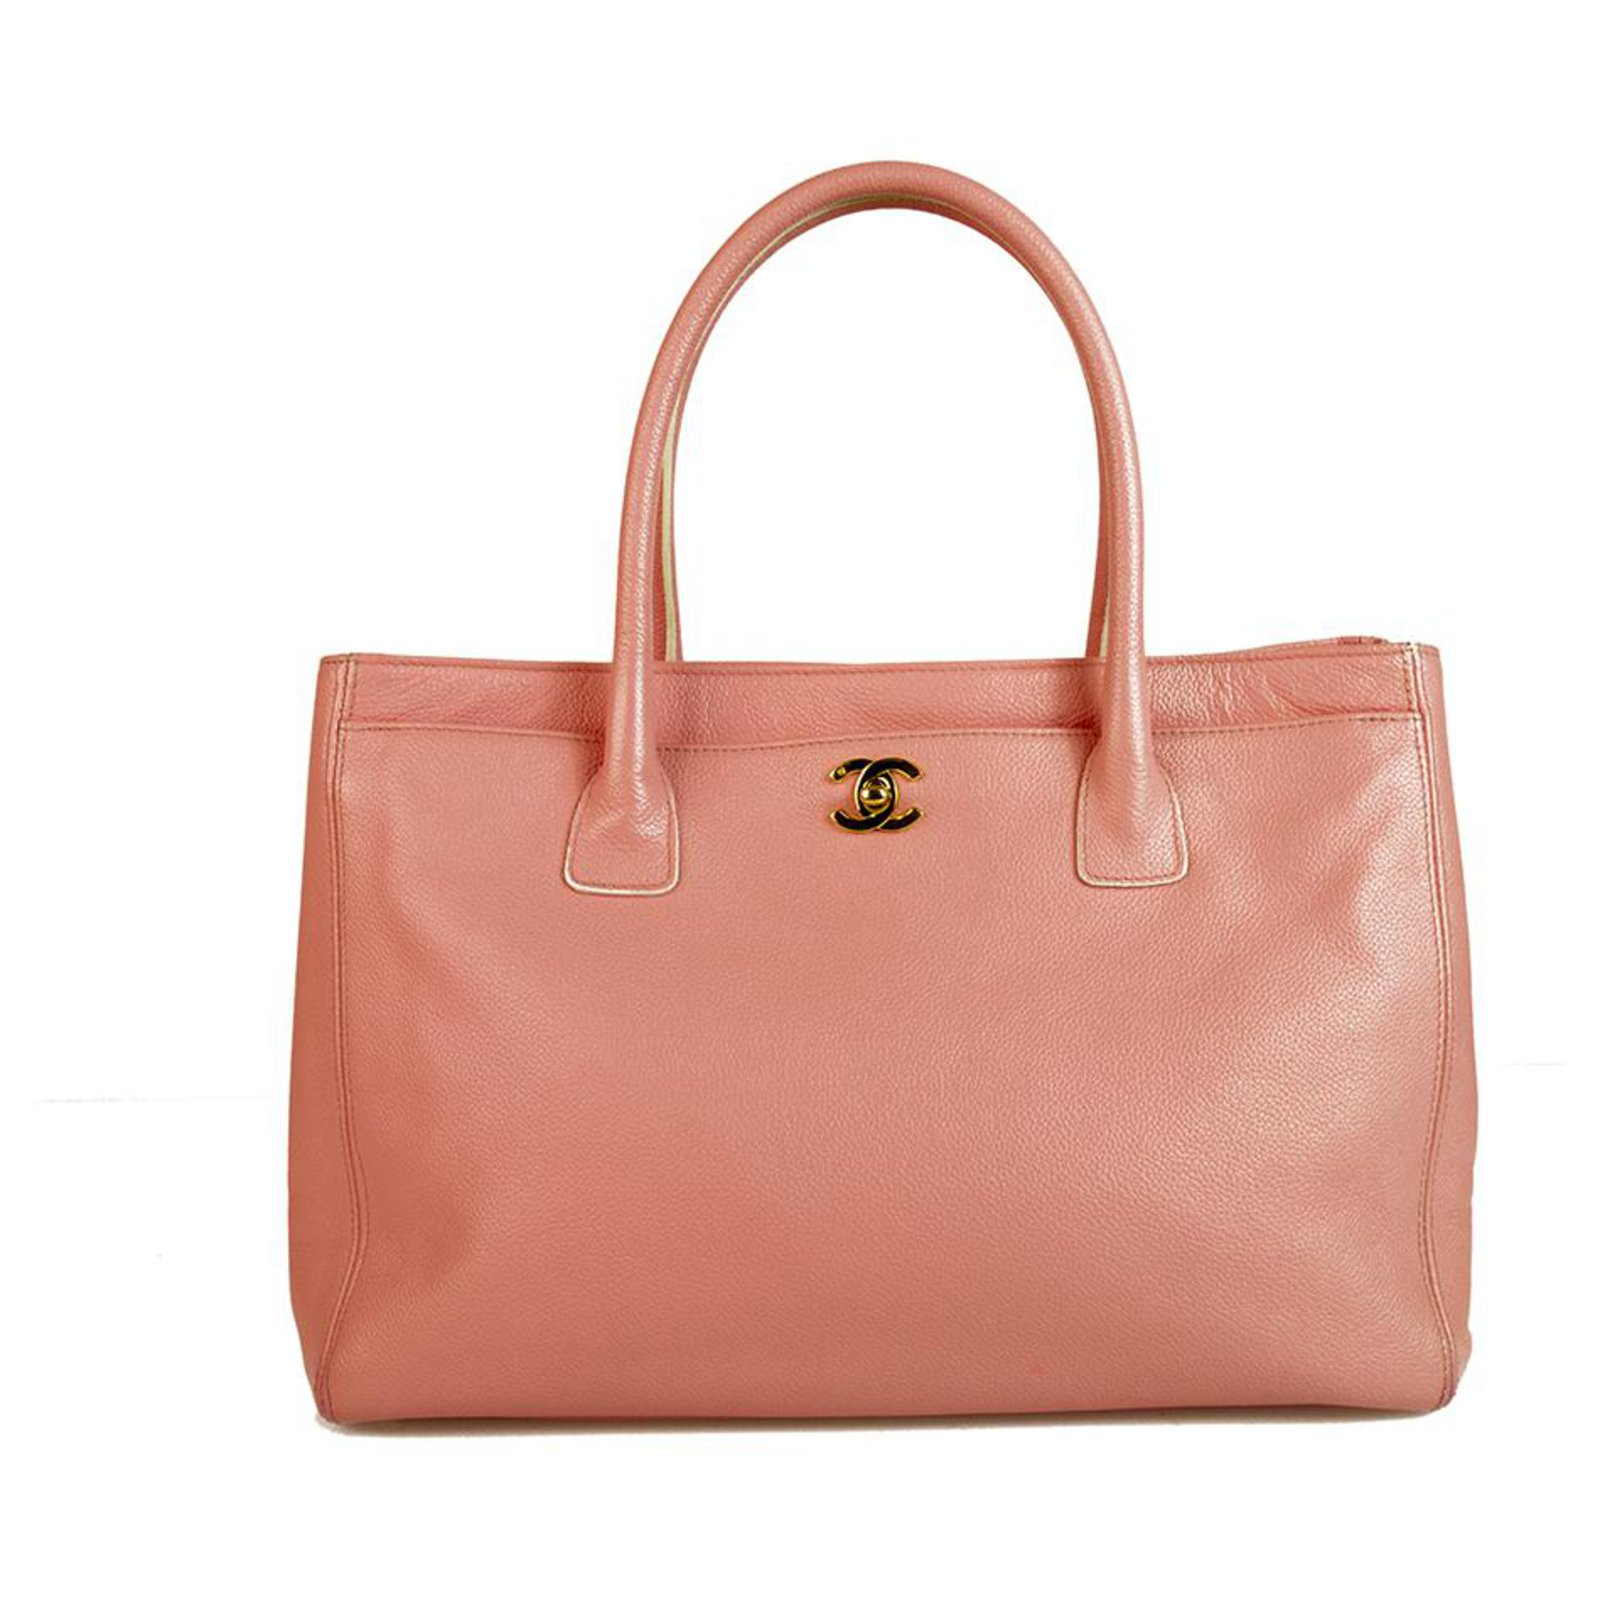 81c89fdaee9b Chanel CHANEL Dusty Pink Pebbled Leather Cerf Shopping Tote Bag Handbags Leather  Pink ref.123416